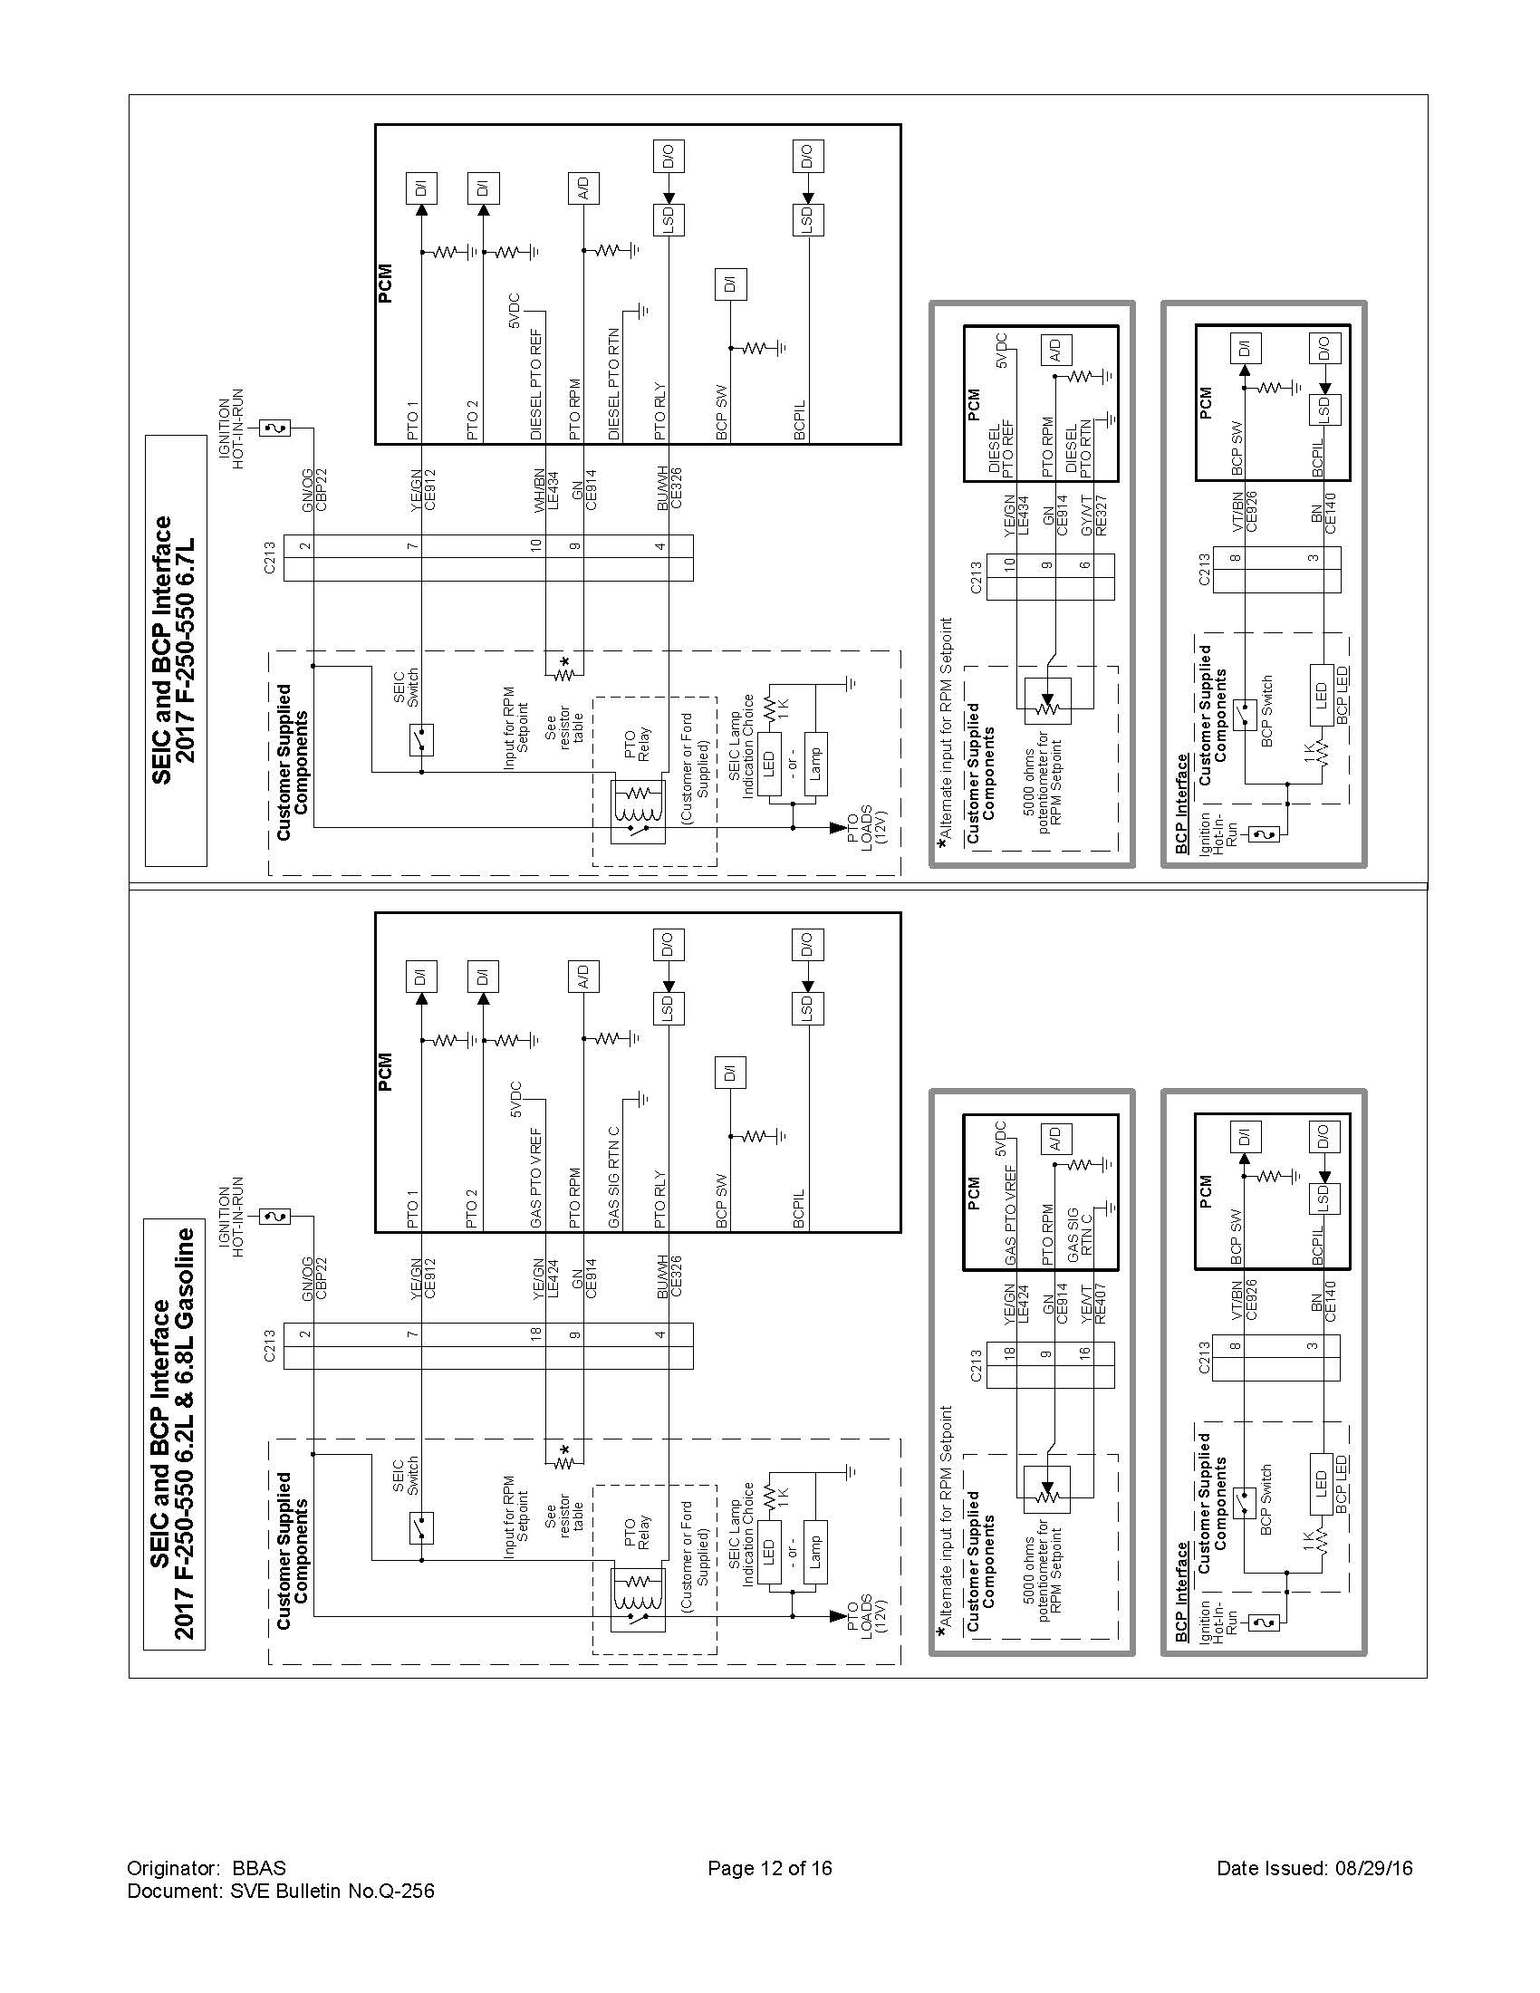 1715 Ford Tractor Wiring Diagram. Ford. Wiring Diagram Images